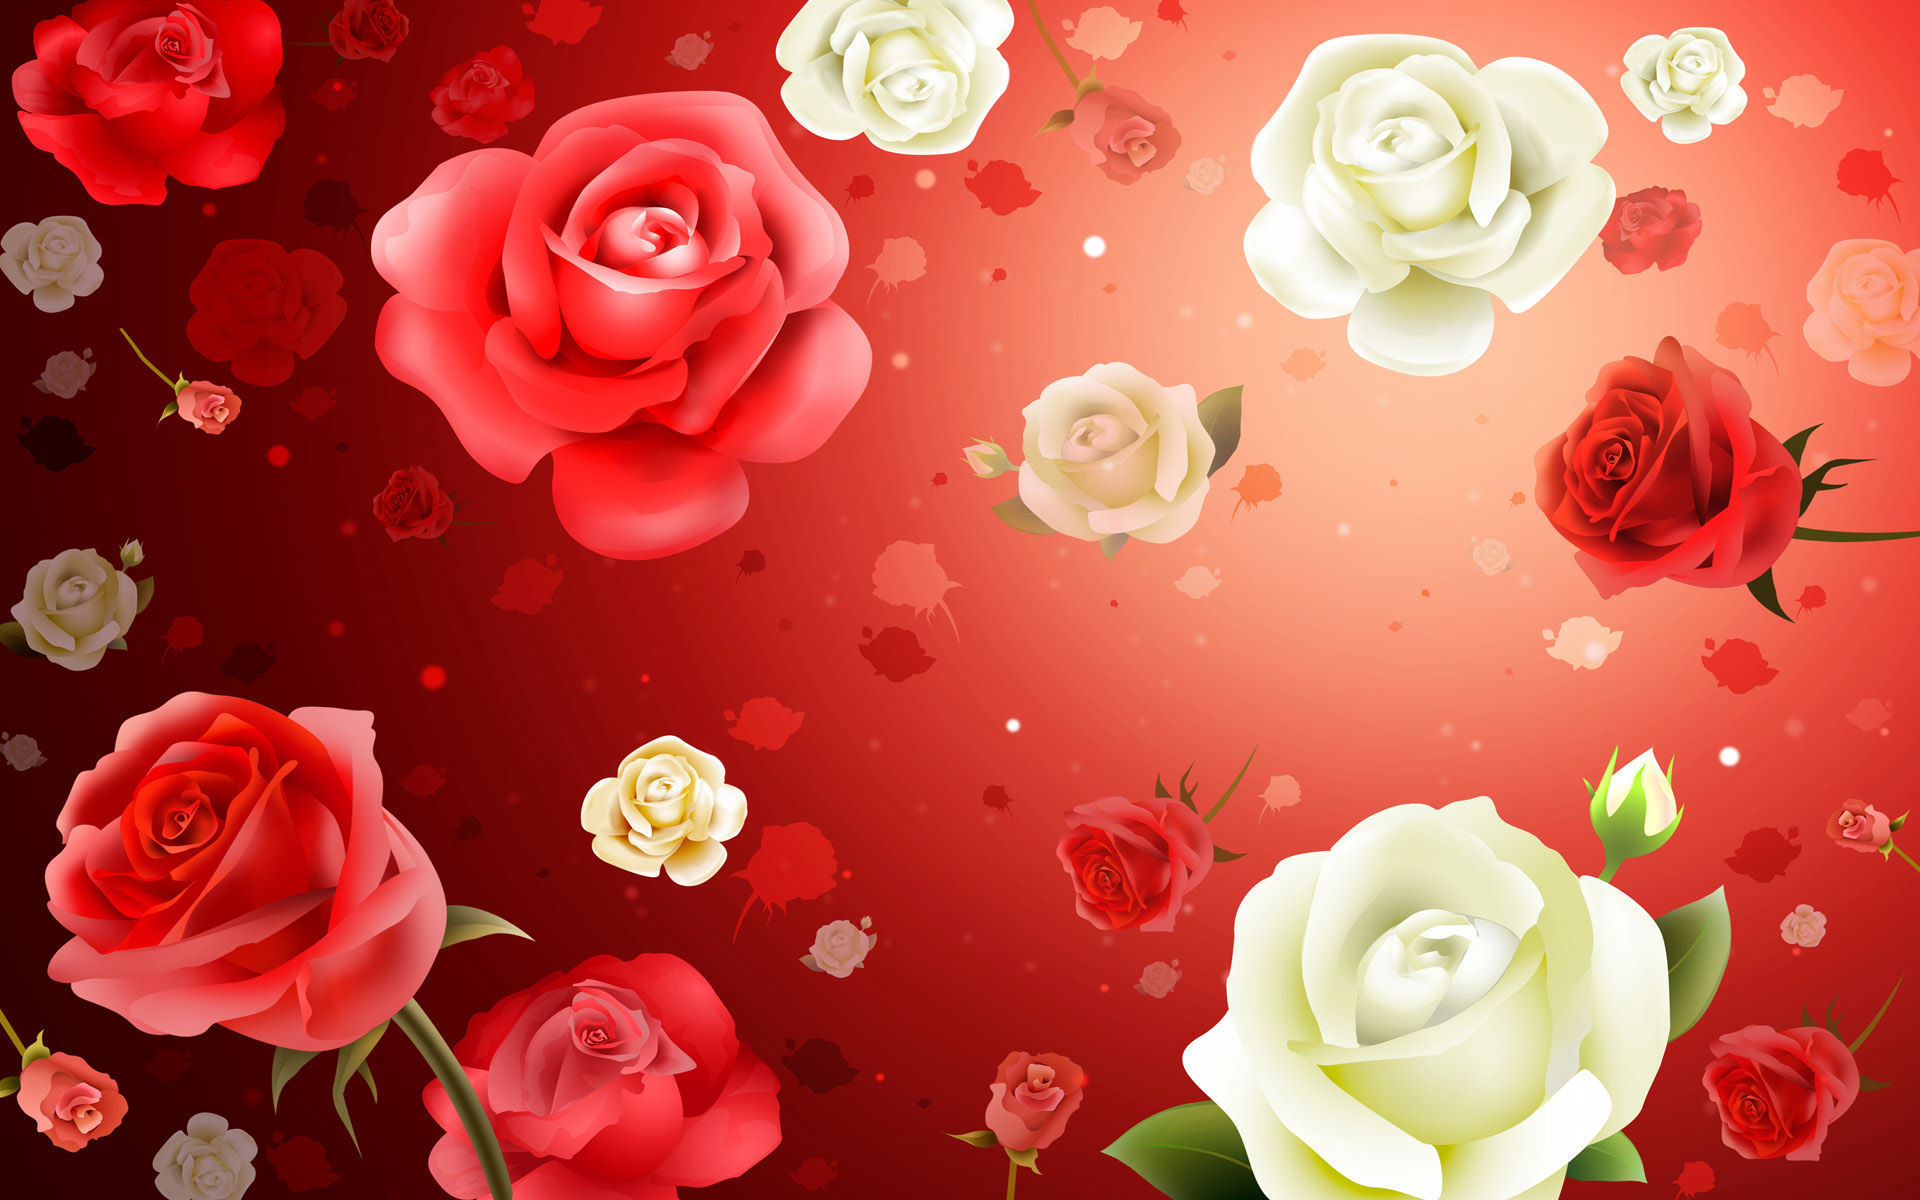 Pretty roses roses wallpaper 16093221 fanpop - Pretty roses wallpaper ...